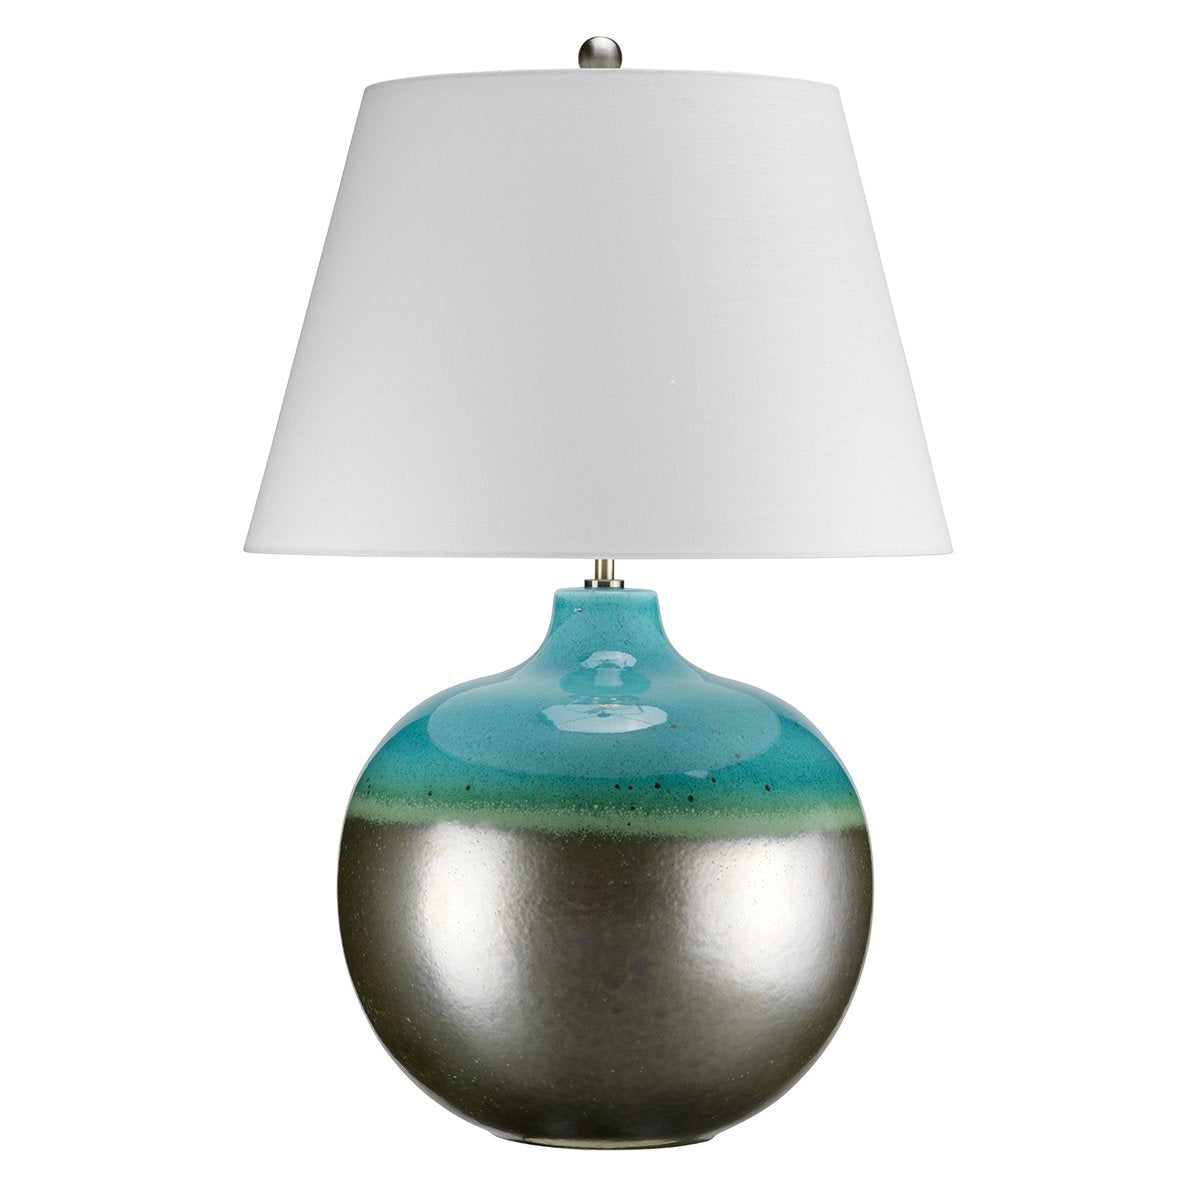 Lampton Large Turquoise Table Lamp c/w Shade - ID 8374